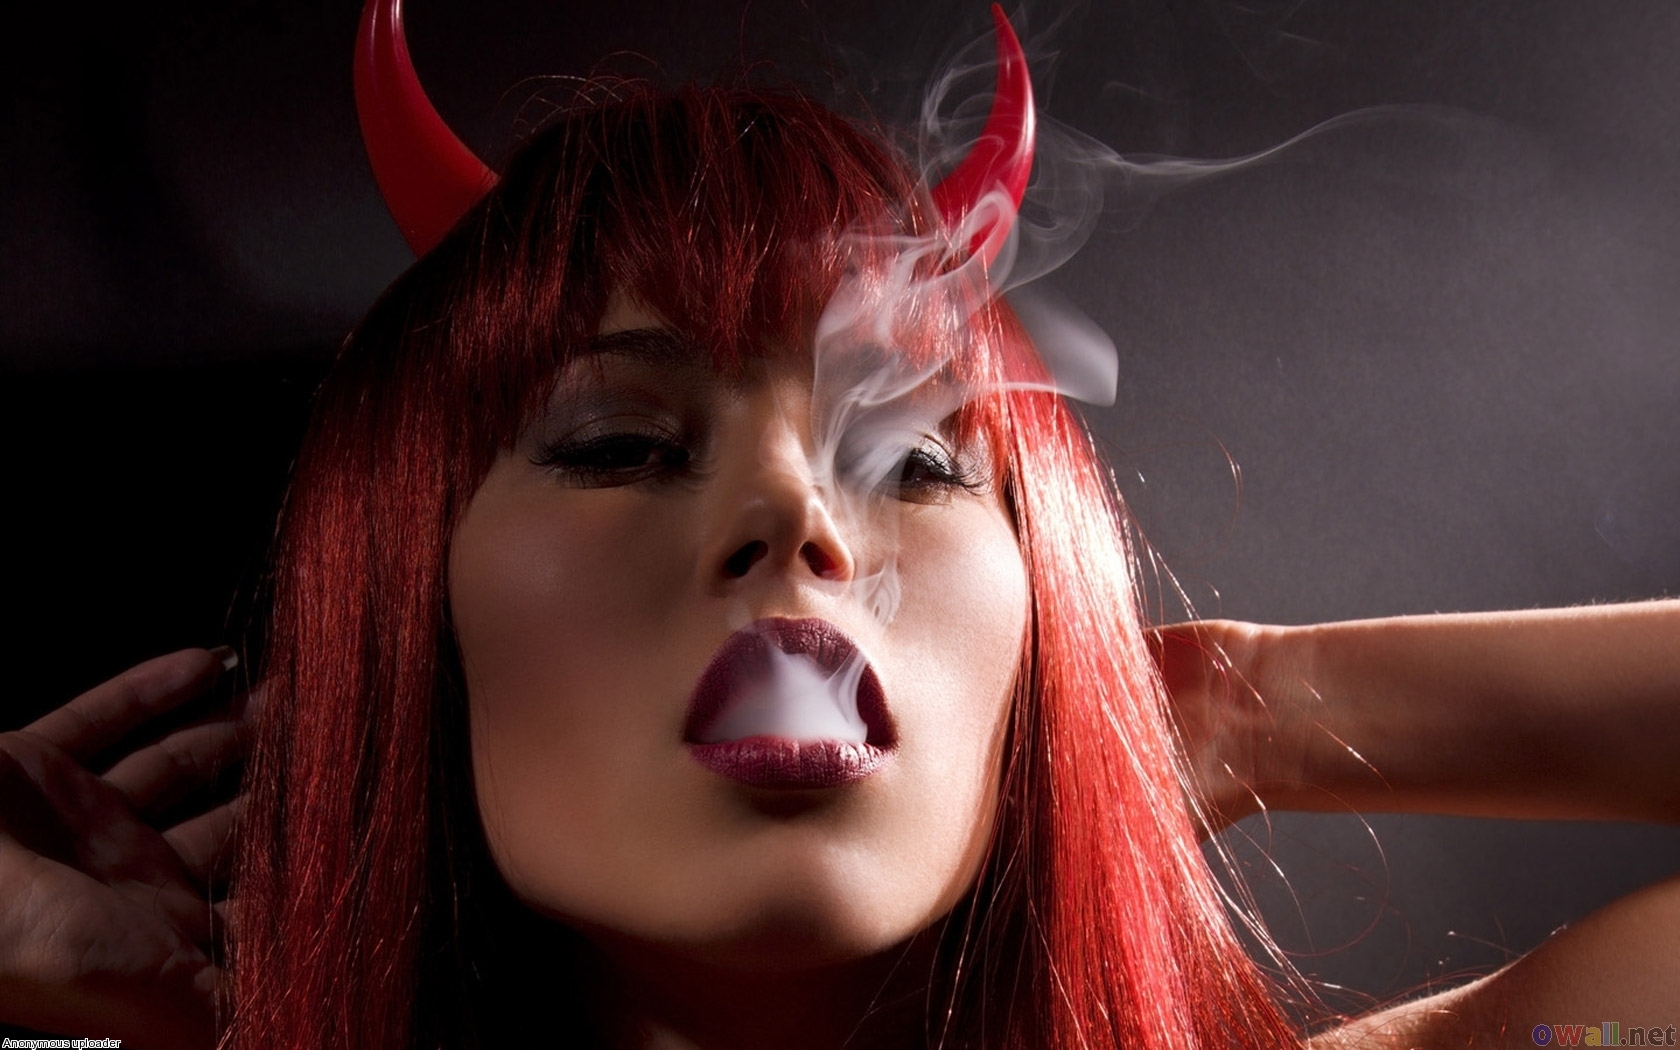 Women - Artistic  - Smoke - Lips Wallpaper